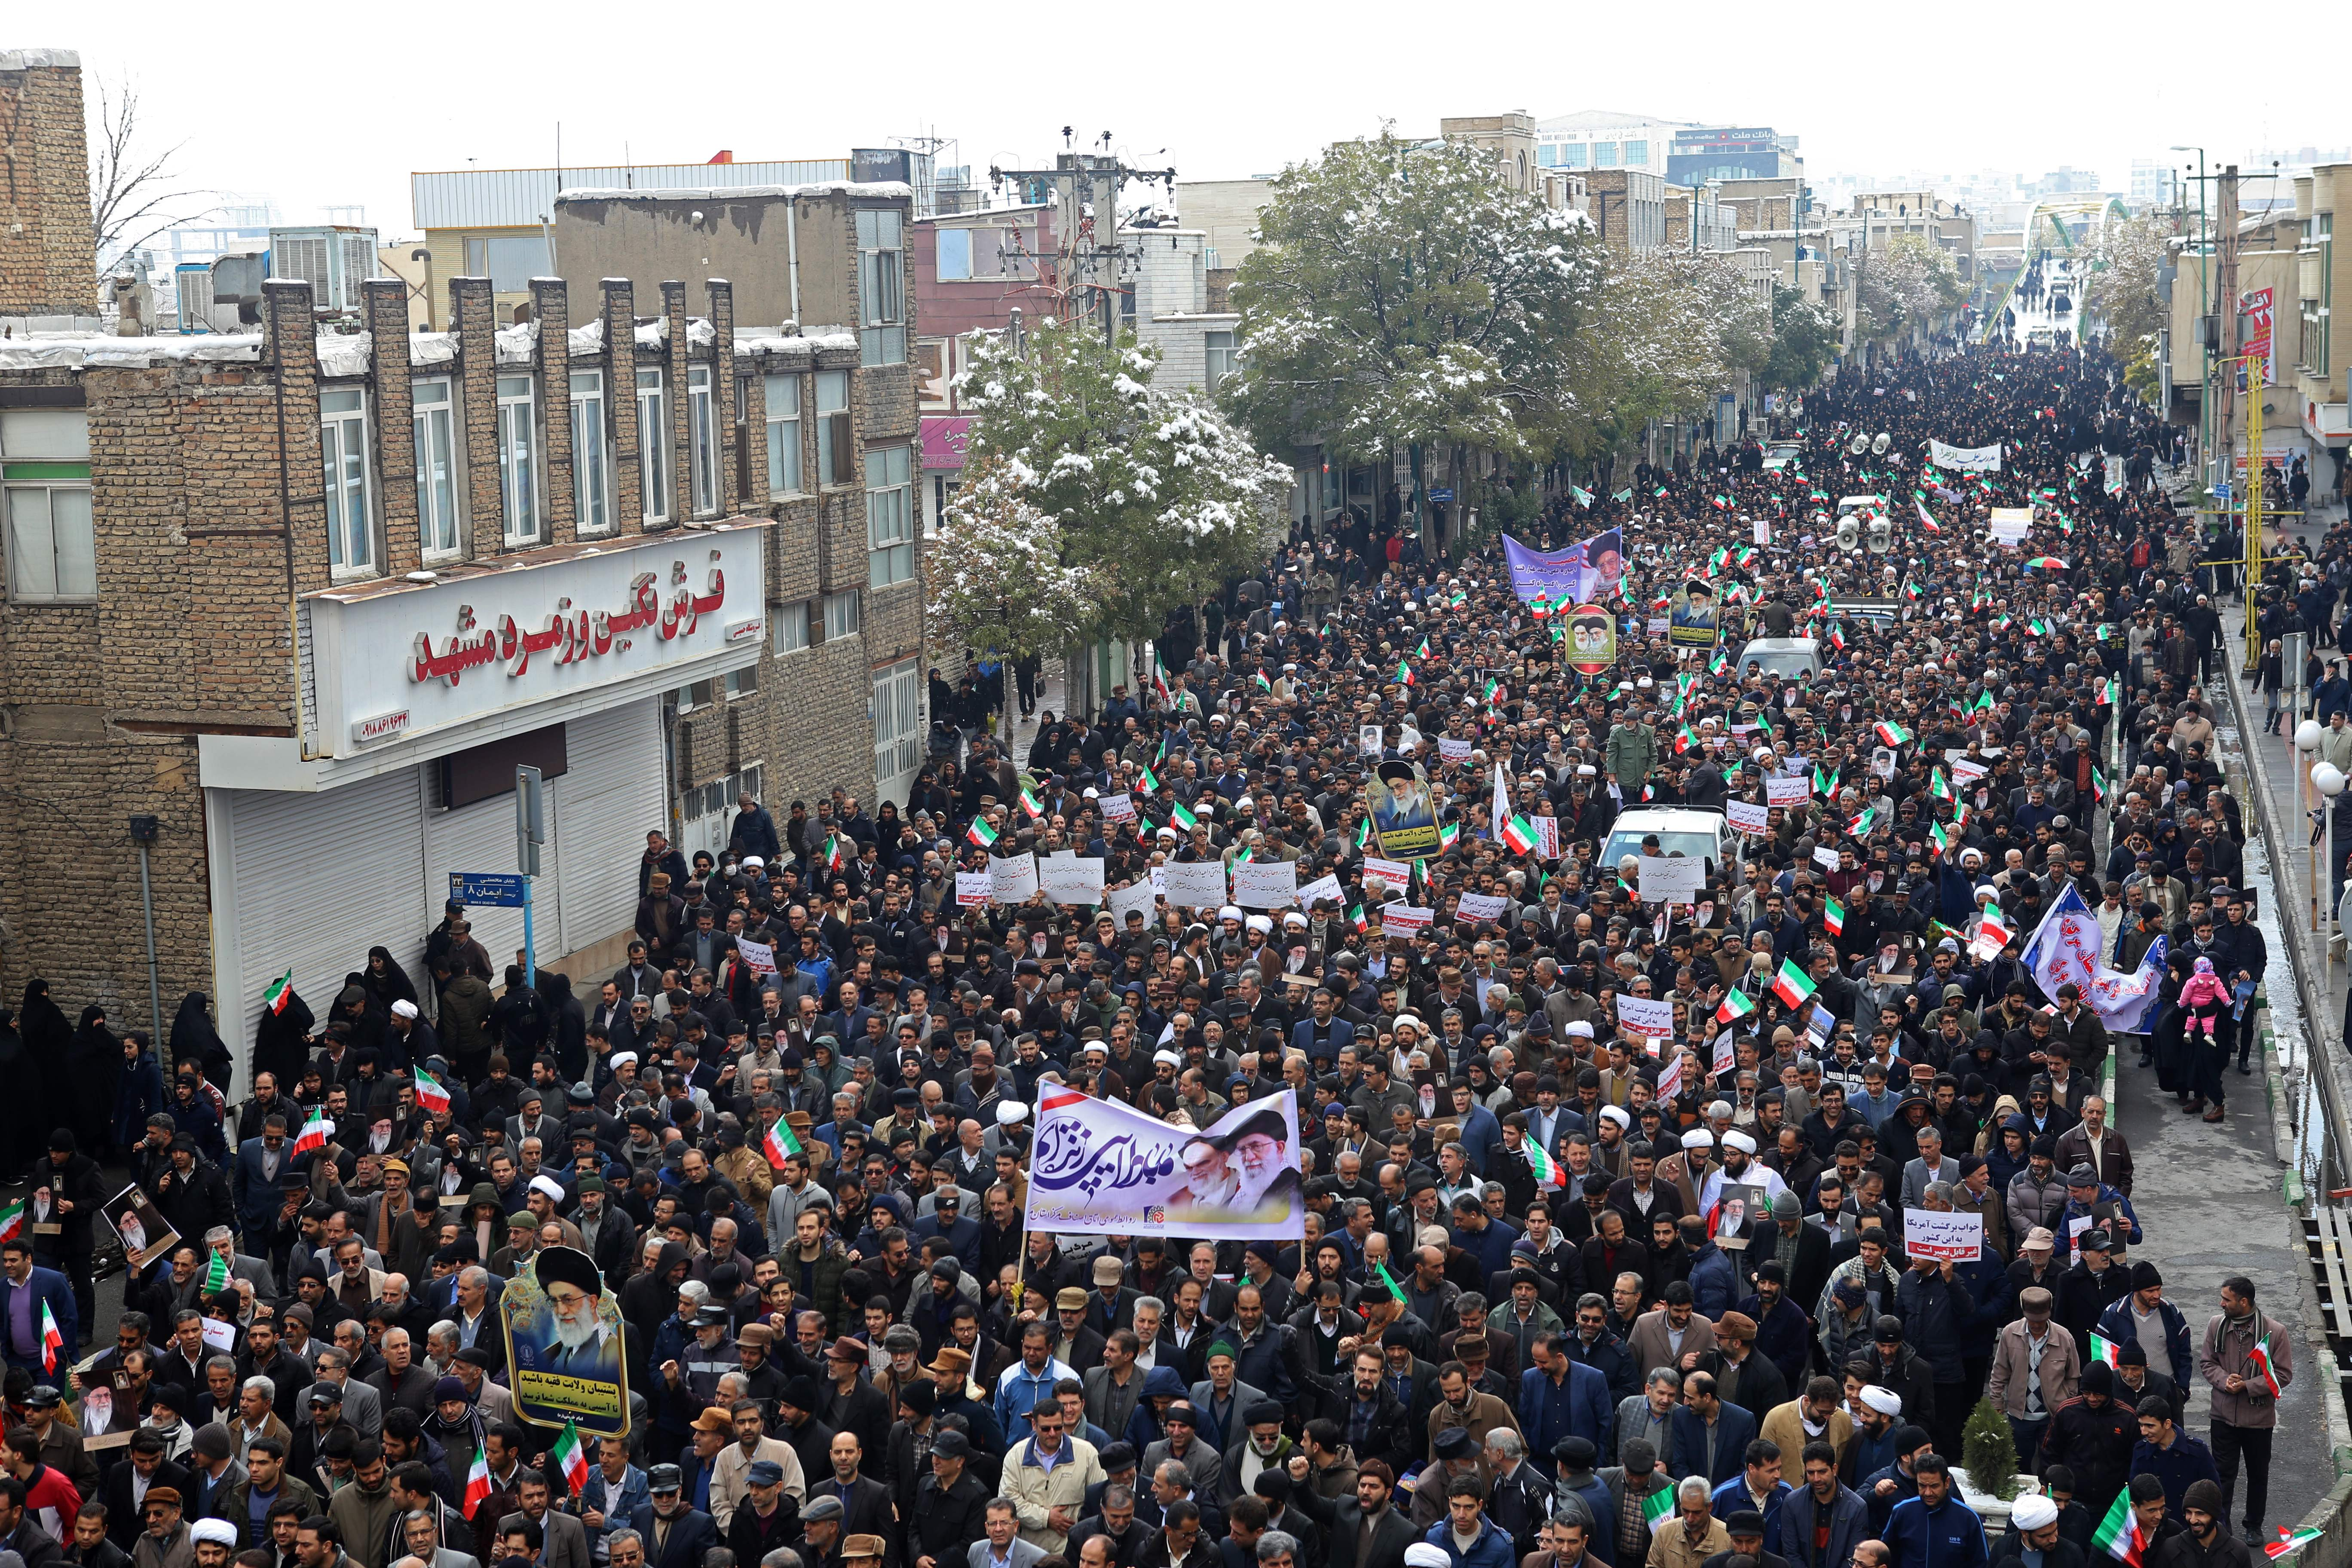 "Iranians take to the streets in support of the Islamic republic's government and supreme leader, Ayatollah Ali Khamenei, in the cenral city of Arak, southwest of the capital Tehran, on November 20, 2019, as President Hassan Rouhani said the country's people had defeated an ""enemy conspiracy"" behind a wave of violent street protests. - Demonstrations erupted in sanctions-hit Iran last week after an announcement the price of petrol would be raised by as much as 200 percent, with motorists blocking major roads in Tehran before the unrest spread rapidly to at least 40 urban centres, with petrol pumps torched, police stations attacked and shops looted. (Photo by STR / AFP) (Photo by STR/AFP via Getty Images)"